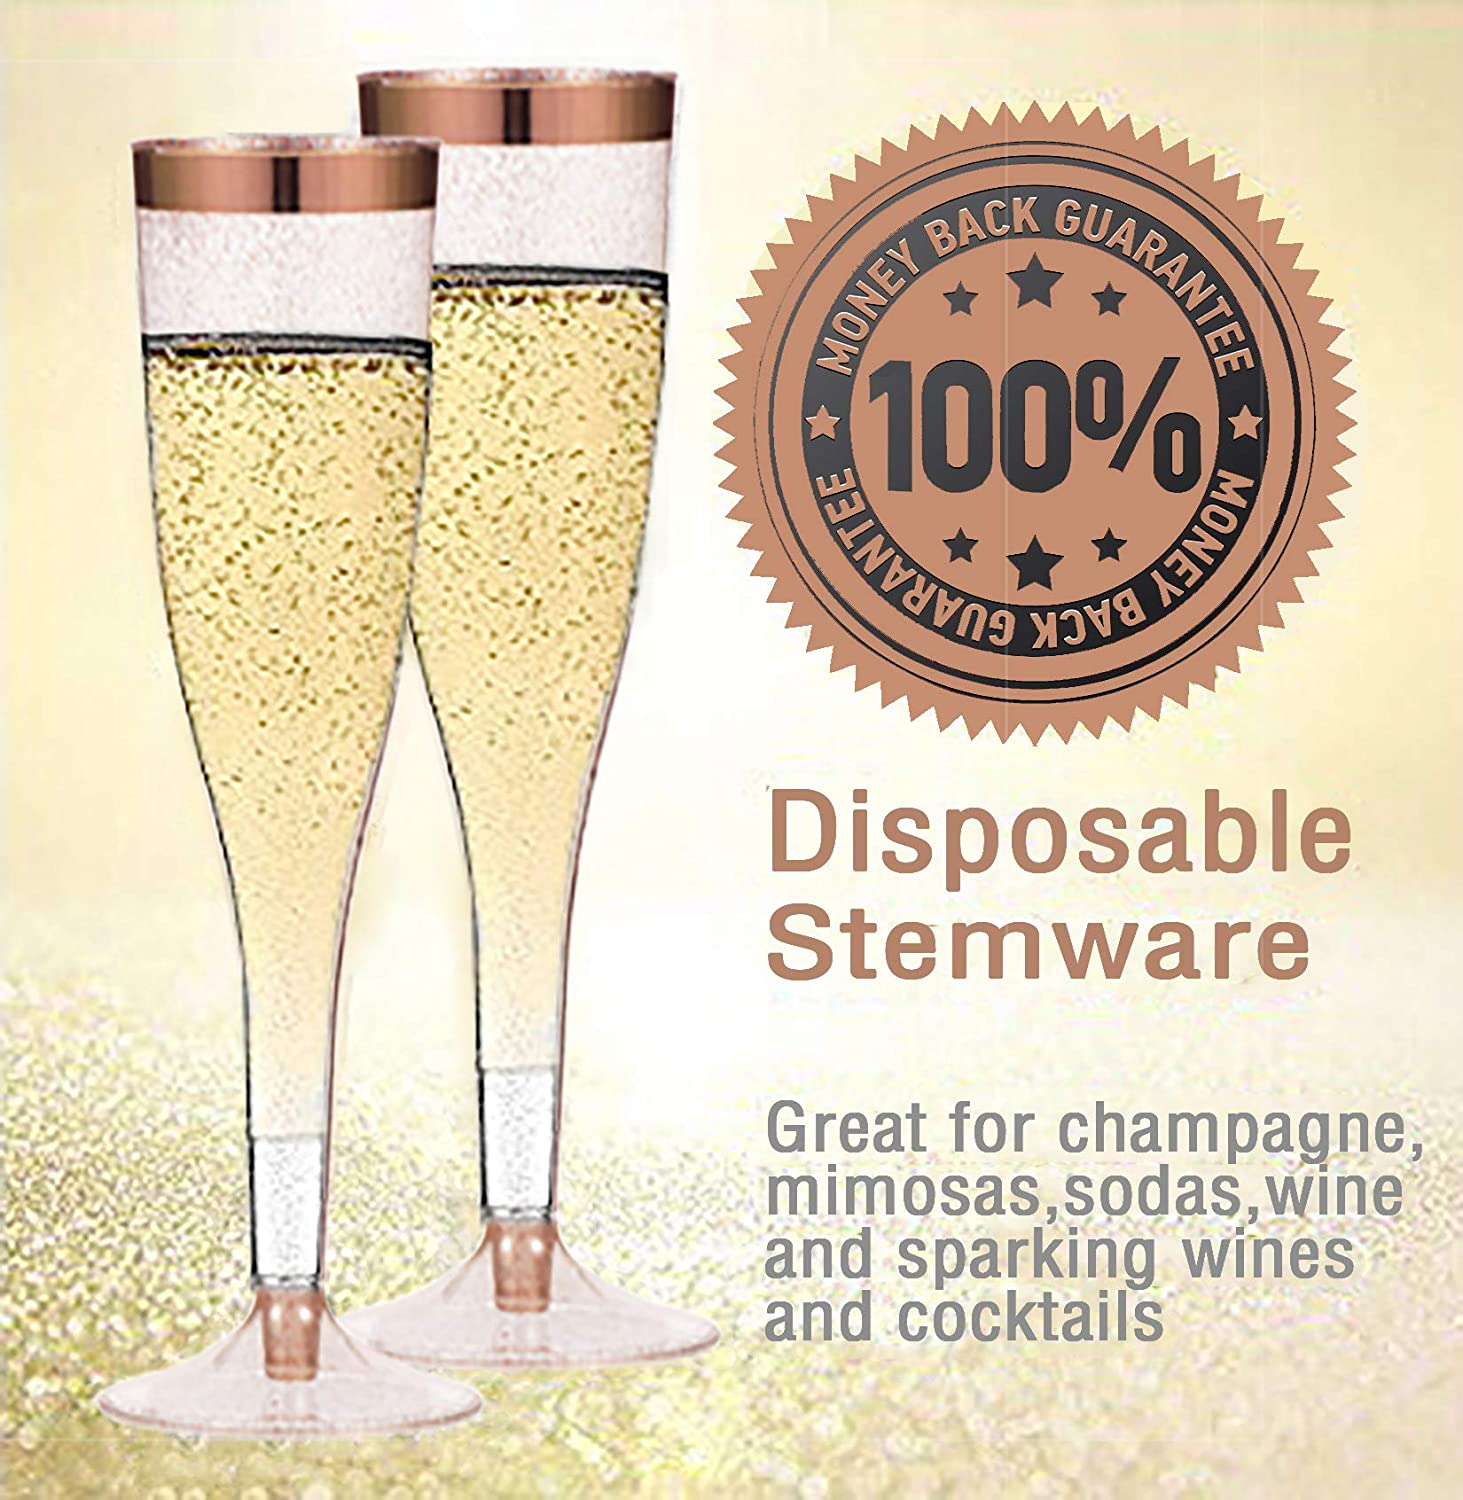 Special Events Practical and Easy to Use Gold Glittery Rim Elegant Design 6.5 Oz Capacity Gold Plastic Champagne Flutes 50-Pcs Disposable Tall Stem Wine Glasses Ideal for Parties